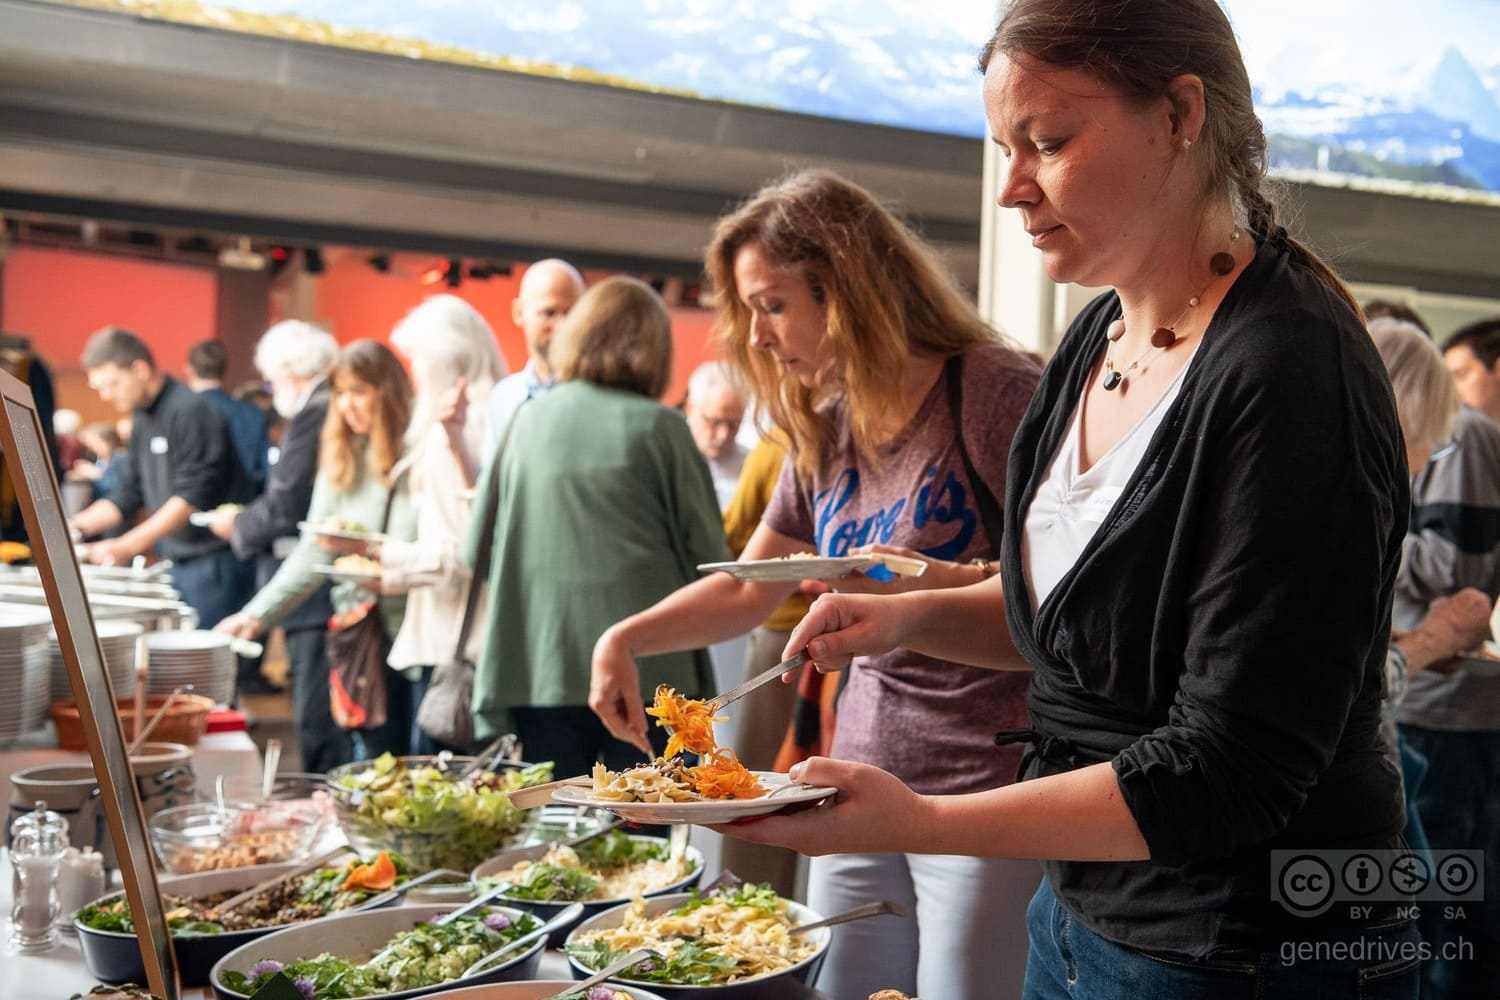 Organic lunch at the GeneDrive Symposium 2019